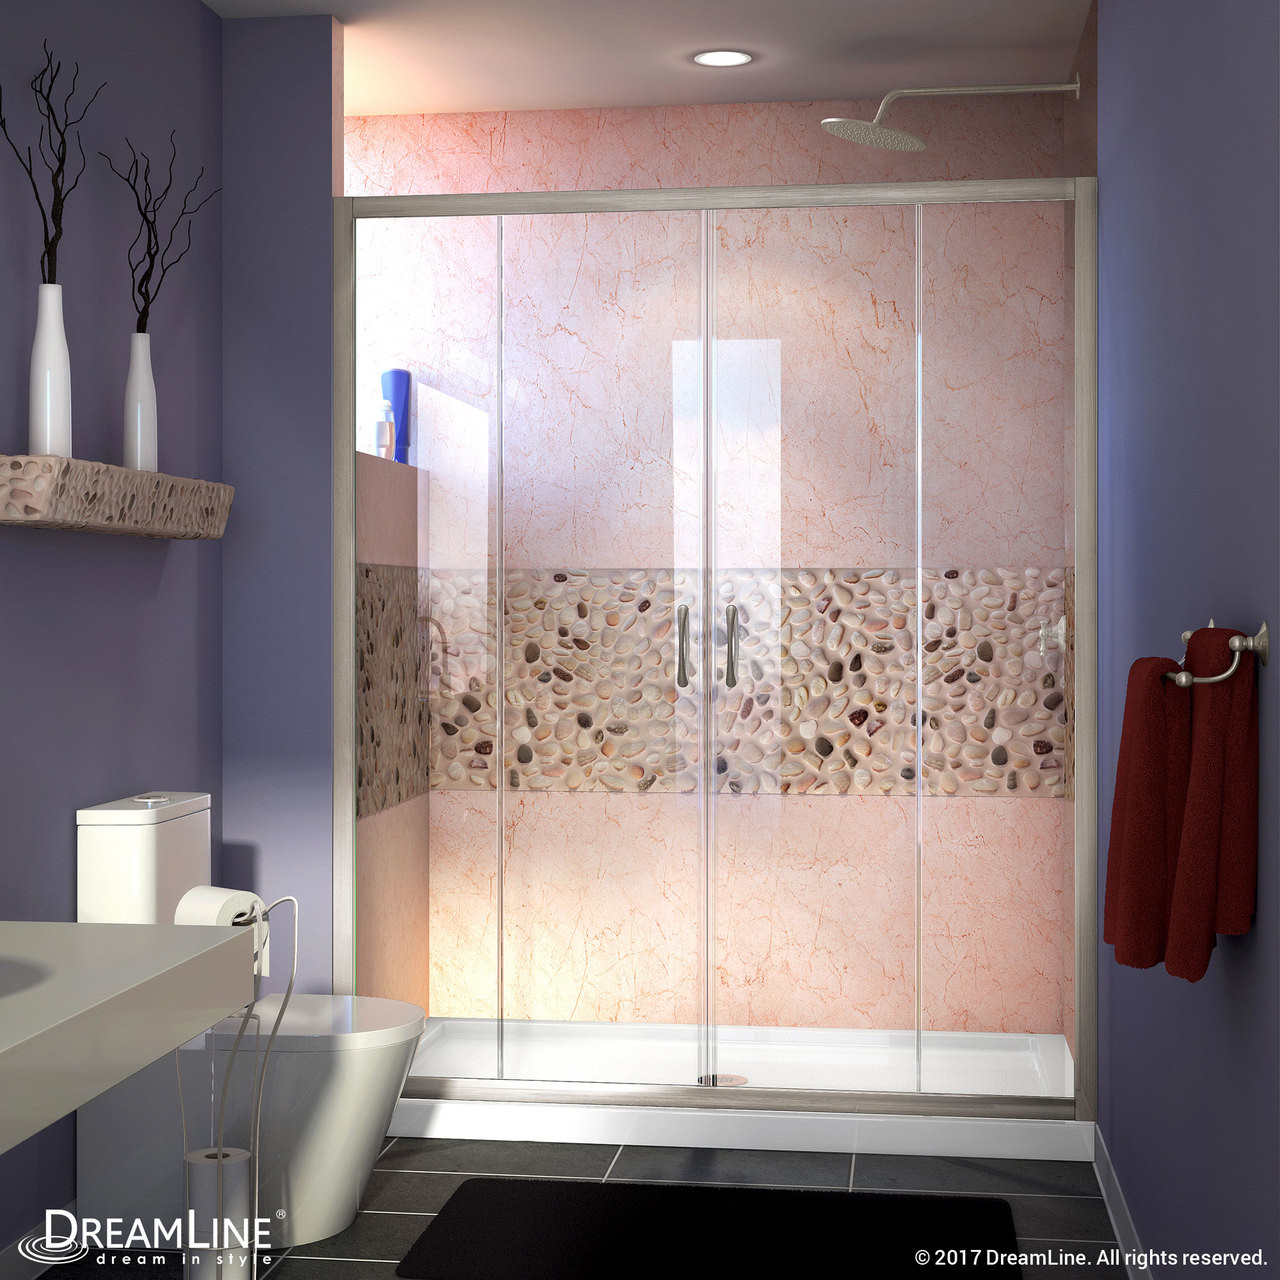 Dreamline Shdr 1160726 04 Visions 56 60 In W X 72 In H Semi Frameless Sliding Shower Door In Brushed Nickel